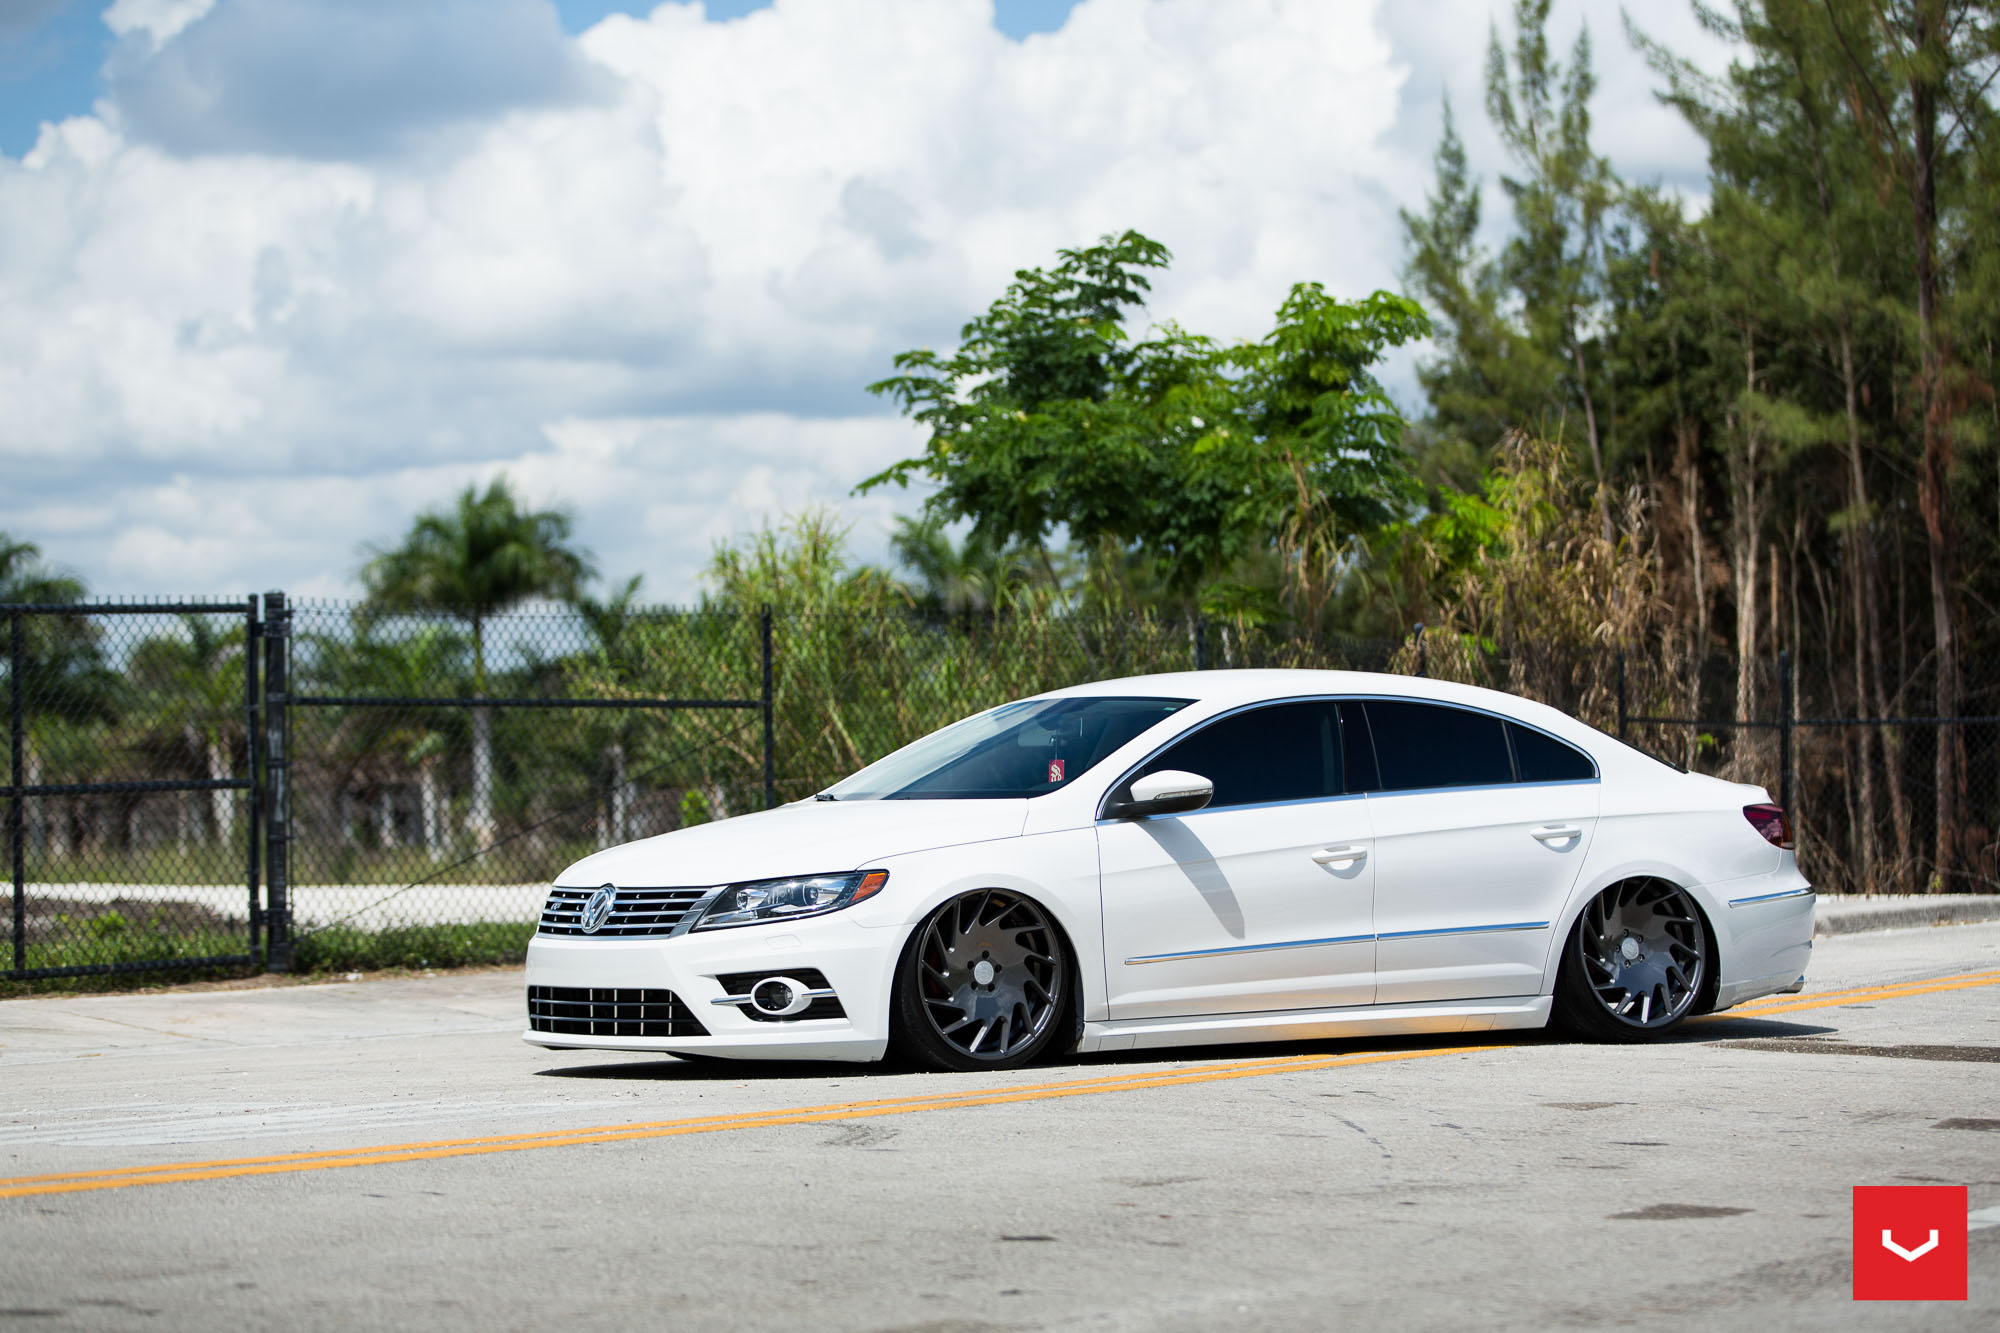 Volkswagen Cc R Line Gets Stanced On Vossen Vle 1 Wheels